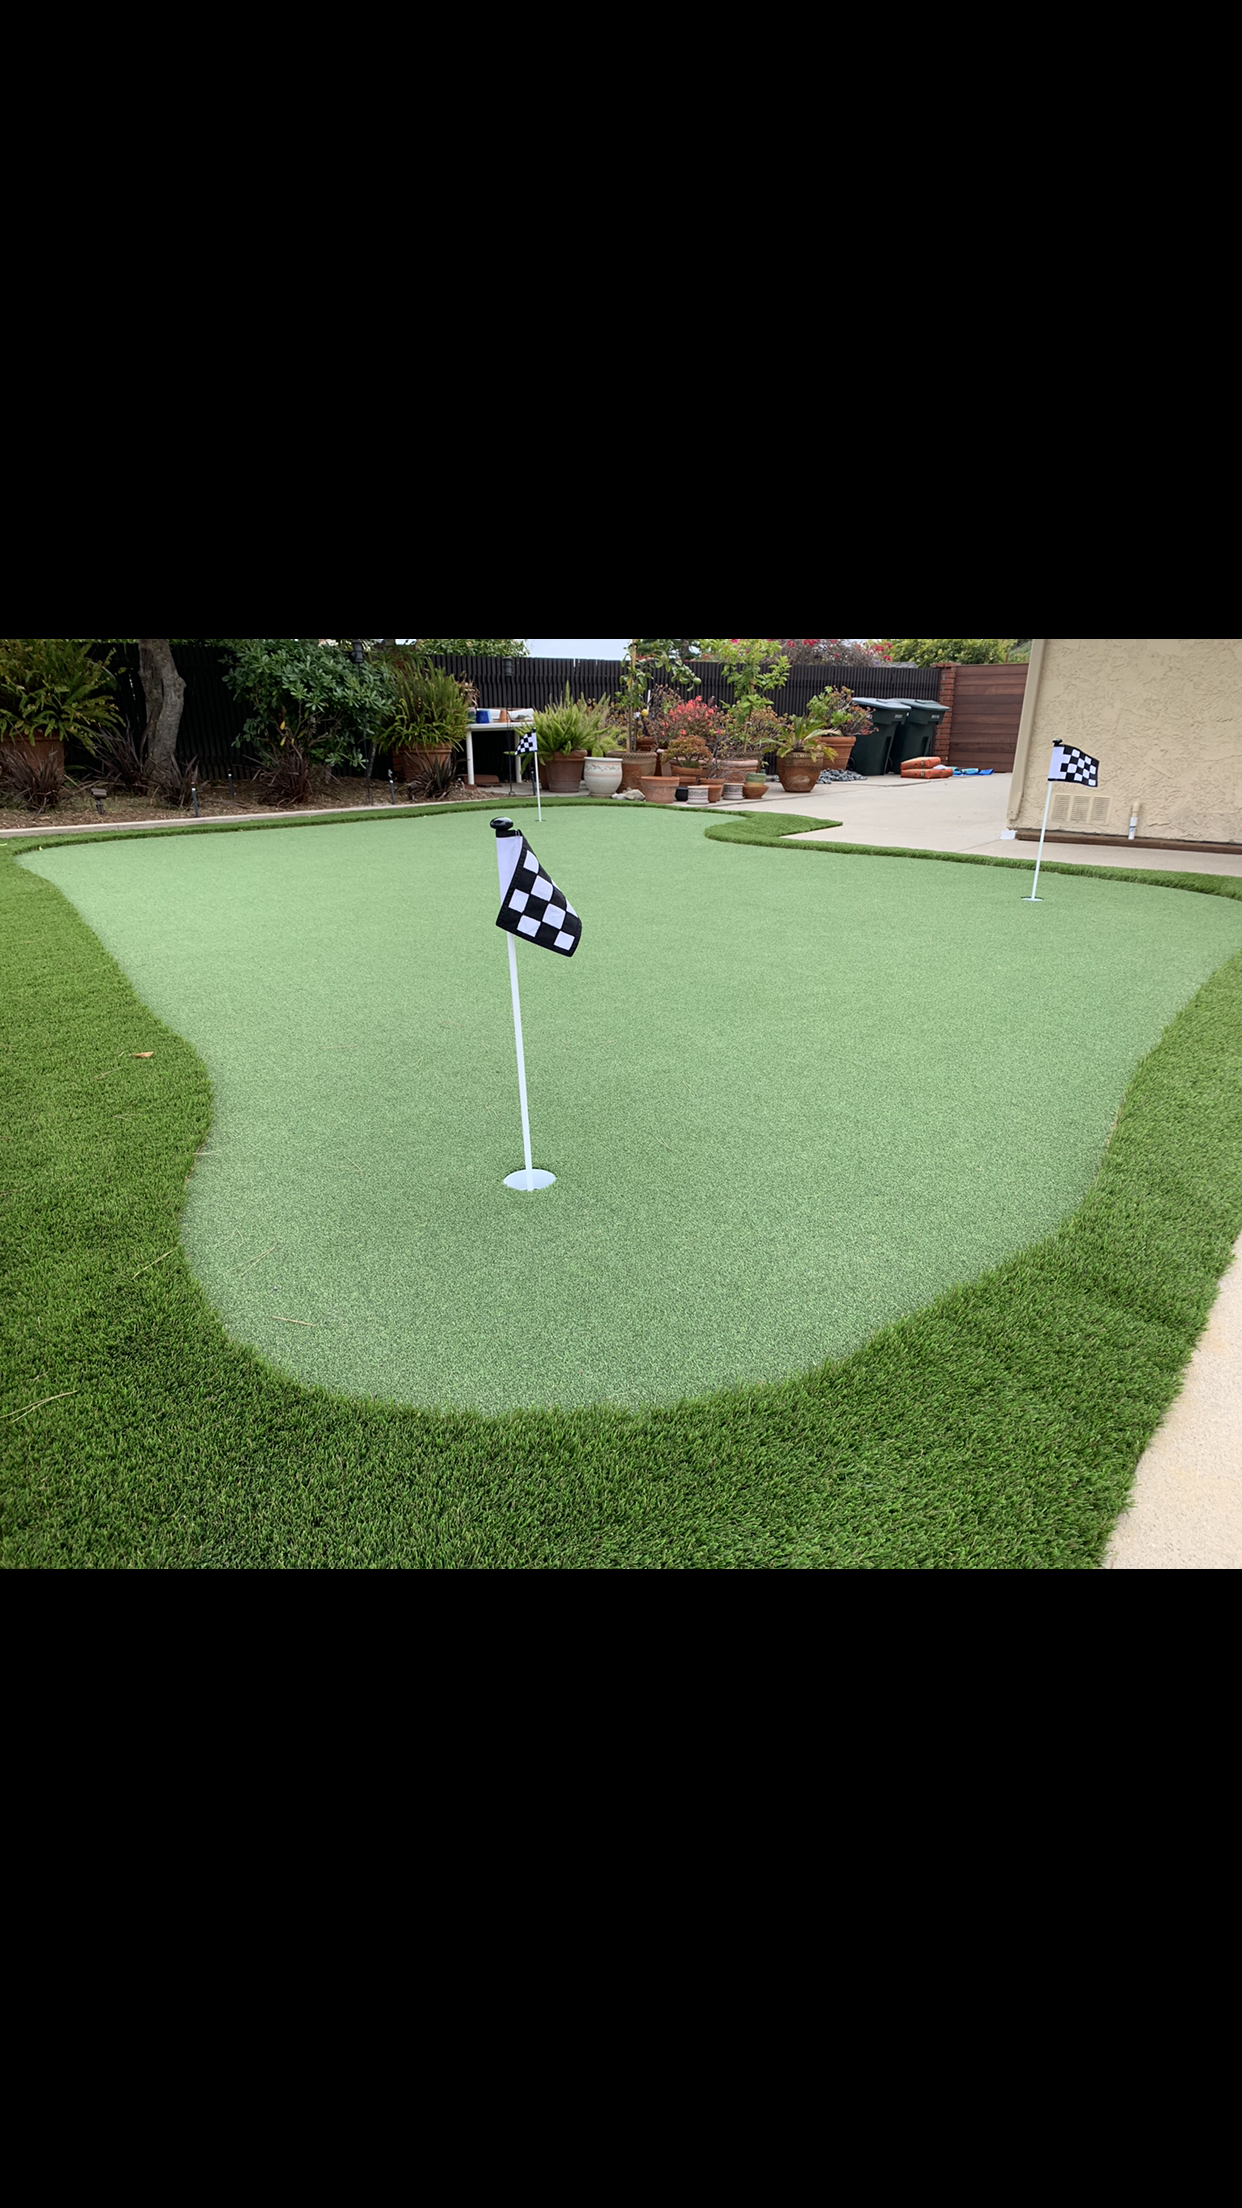 Putt-60 Bicolor best artificial grass,best fake grass,best synthetic grass,best turf,best artificial grass for home,fake green grass,green grass carpet